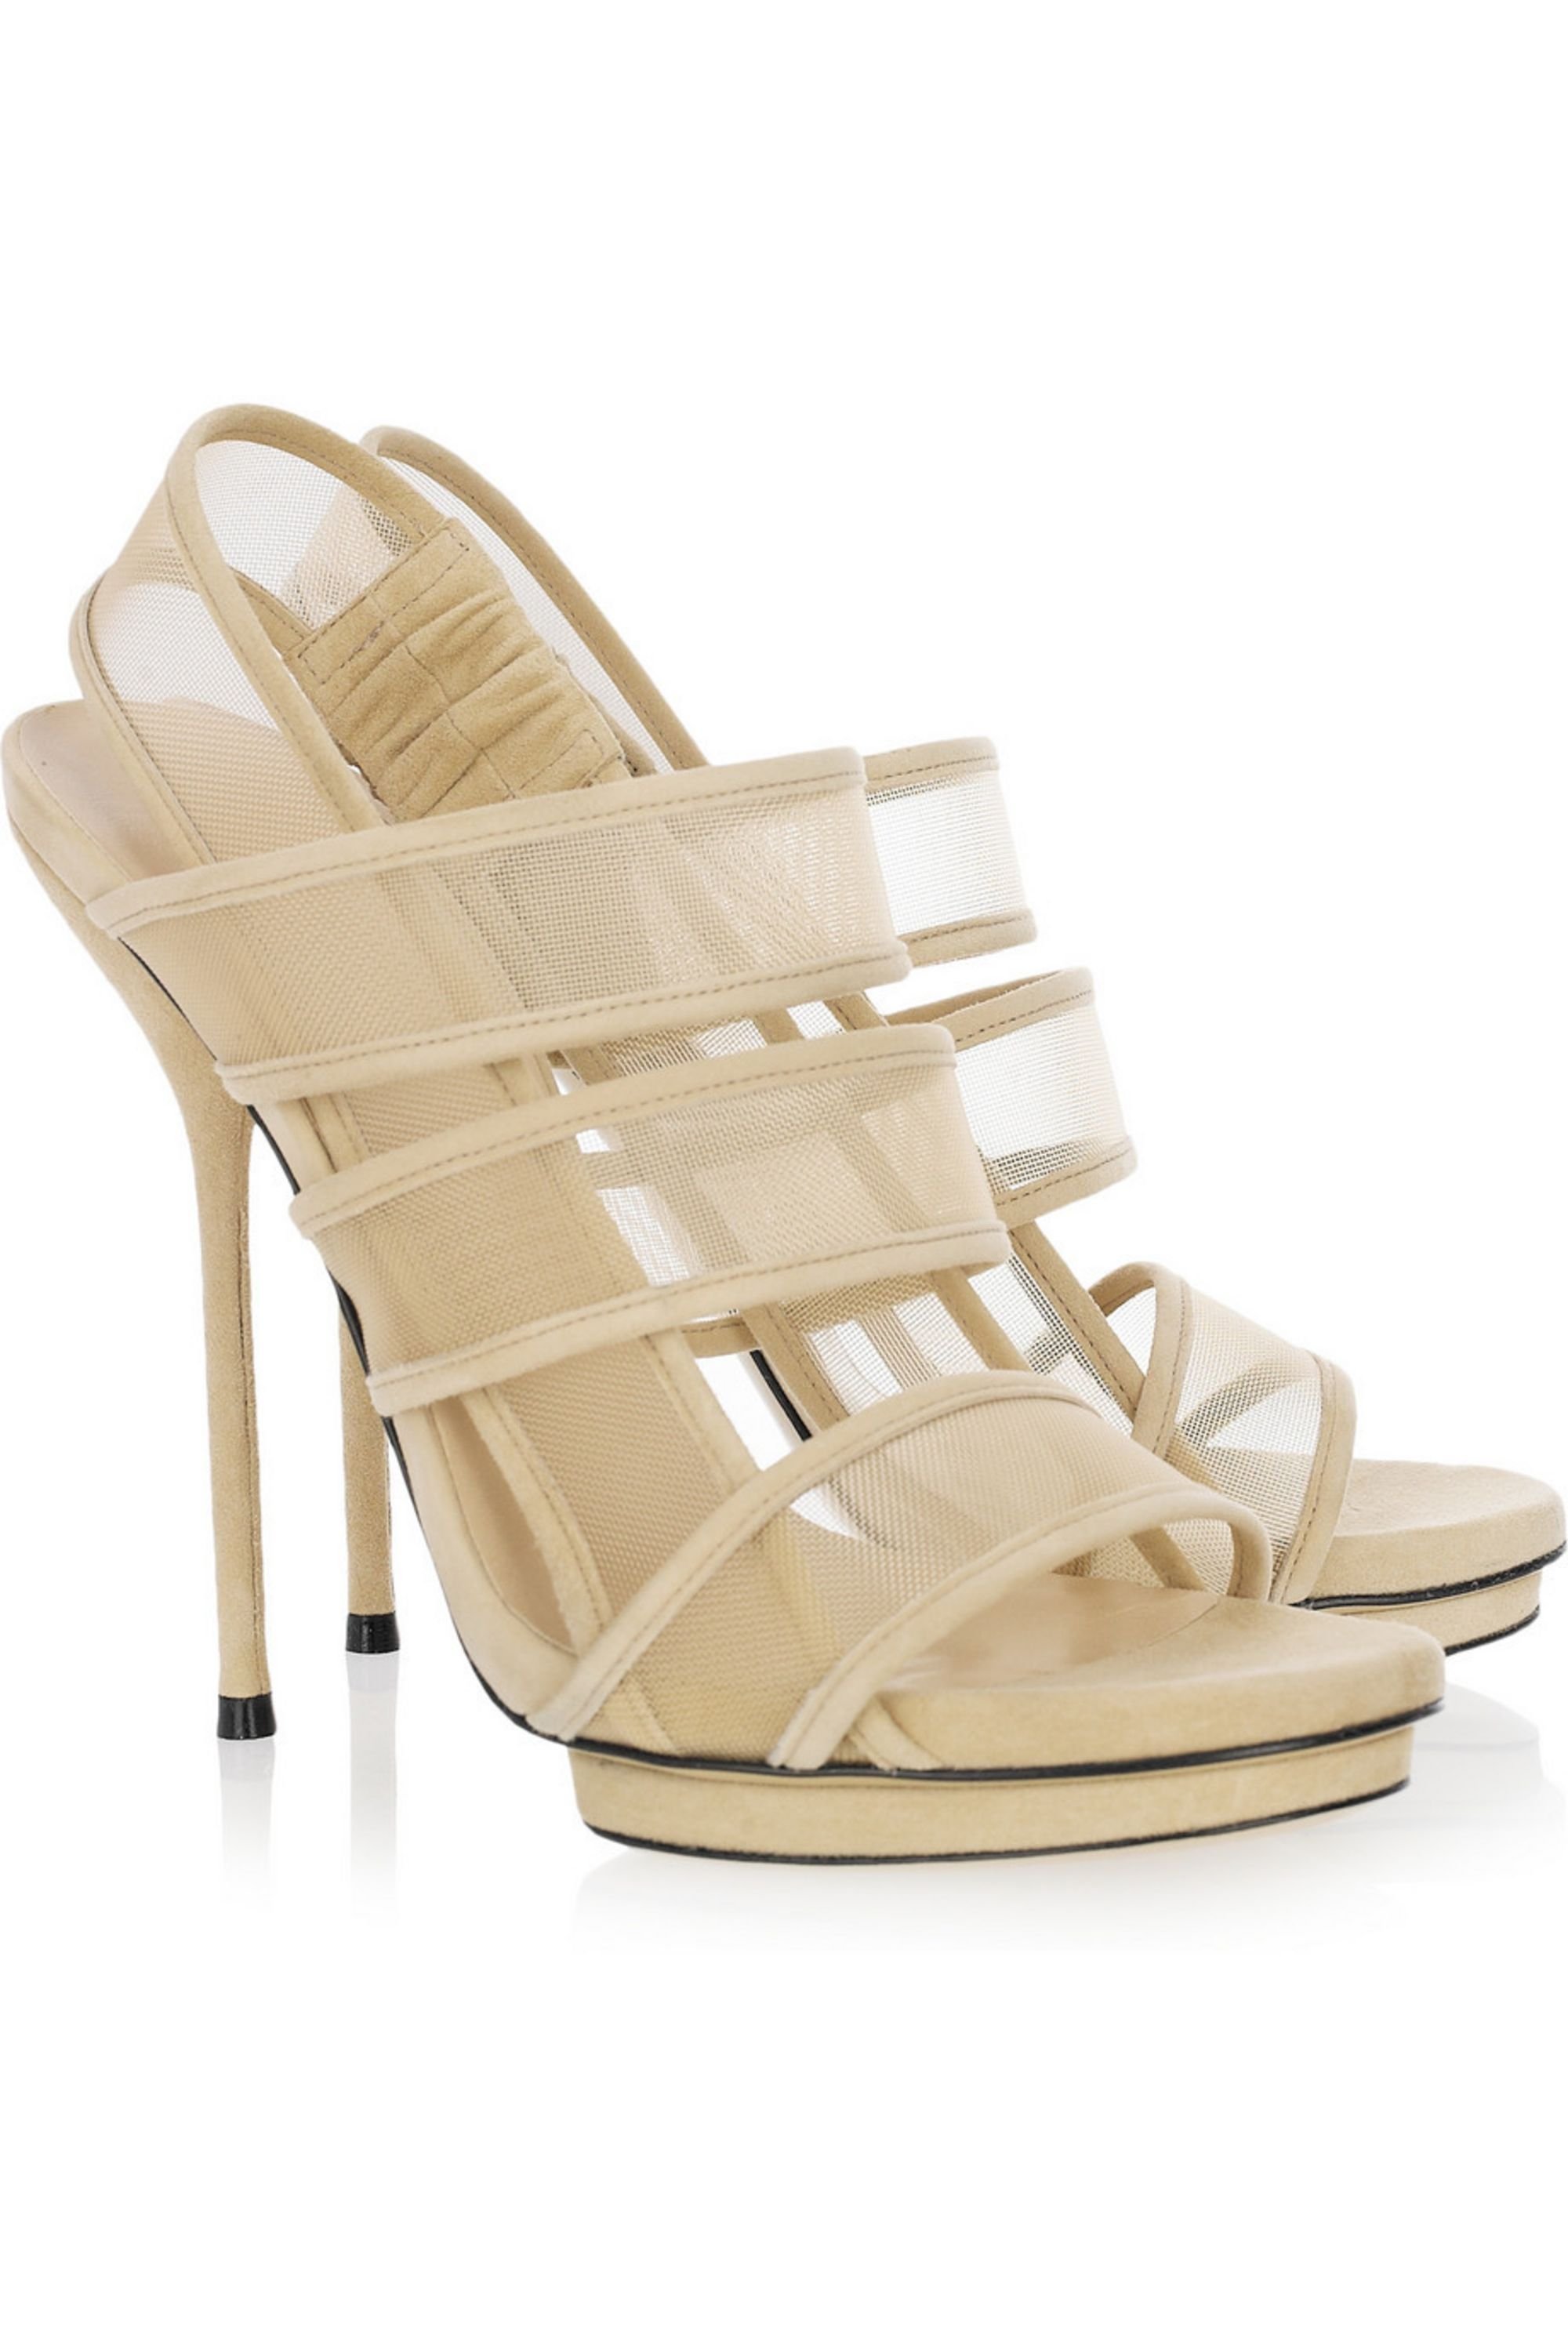 Gucci Mesh and suede sandals